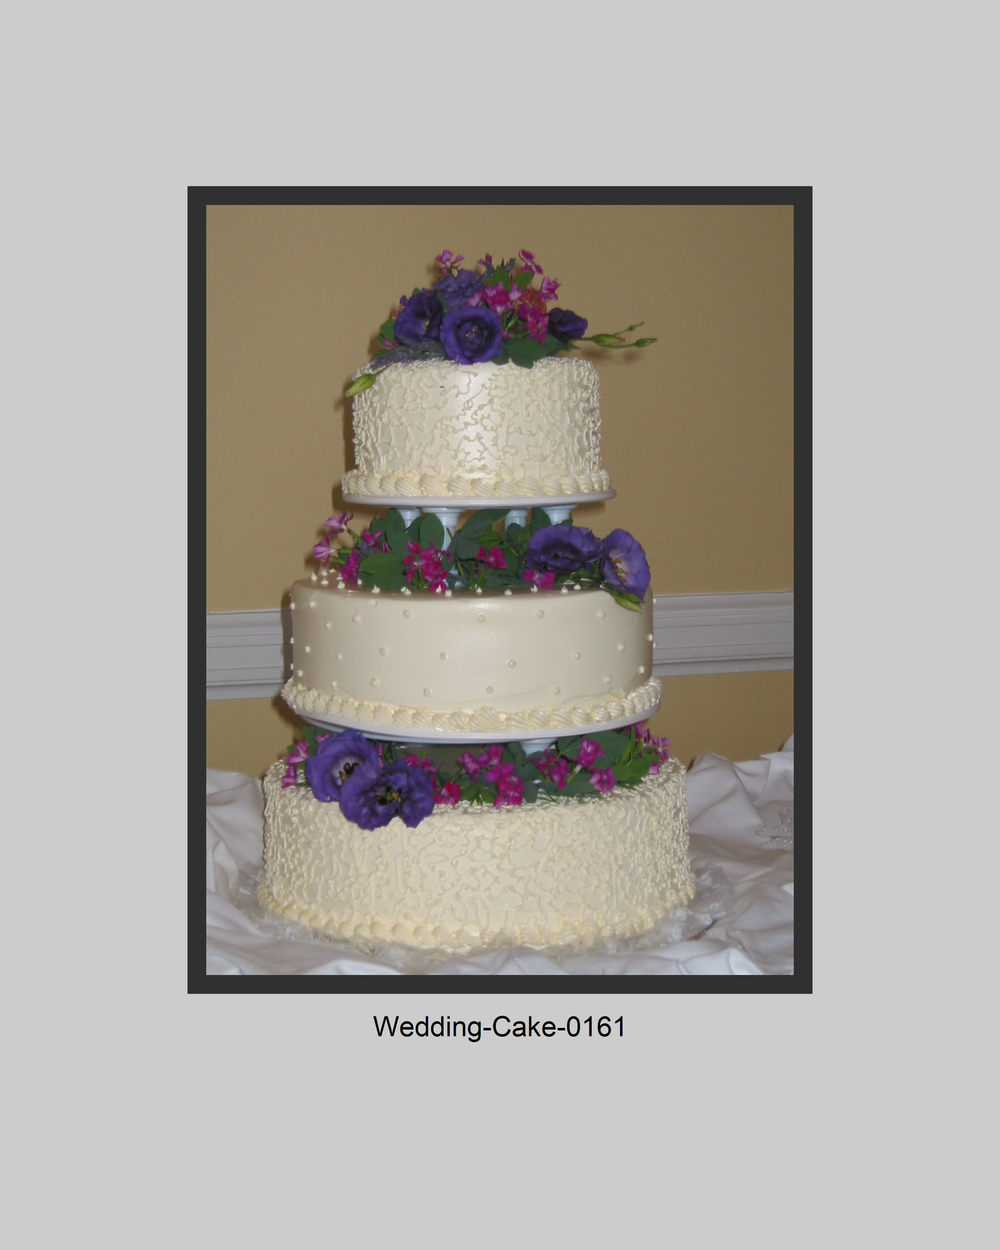 Wedding-Cake-Prints-0161.jpg